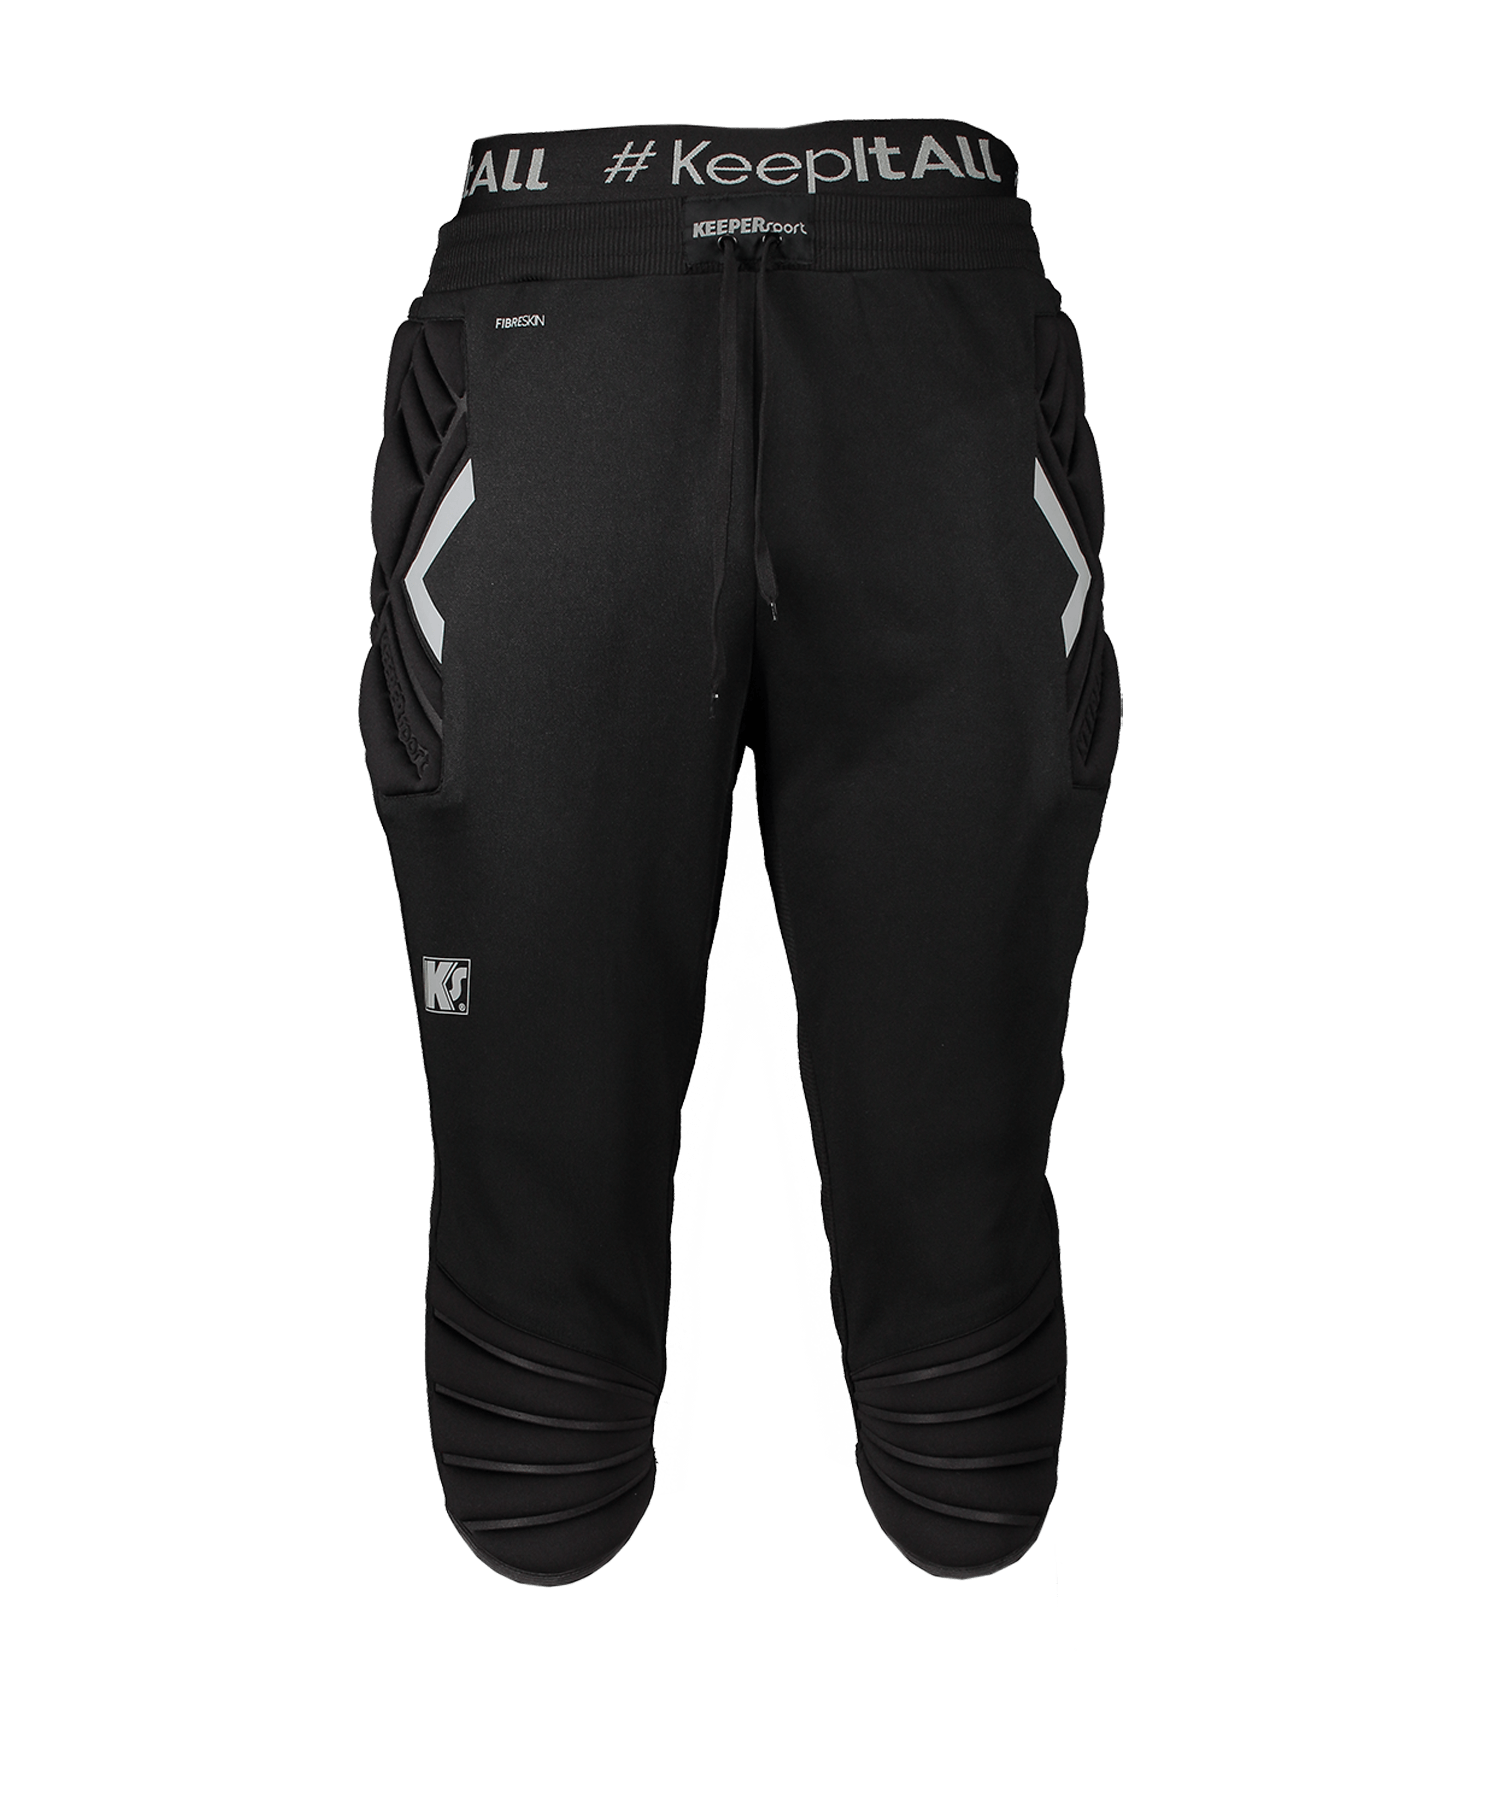 KEEPERsport Training 3/4 GK-Pants BP